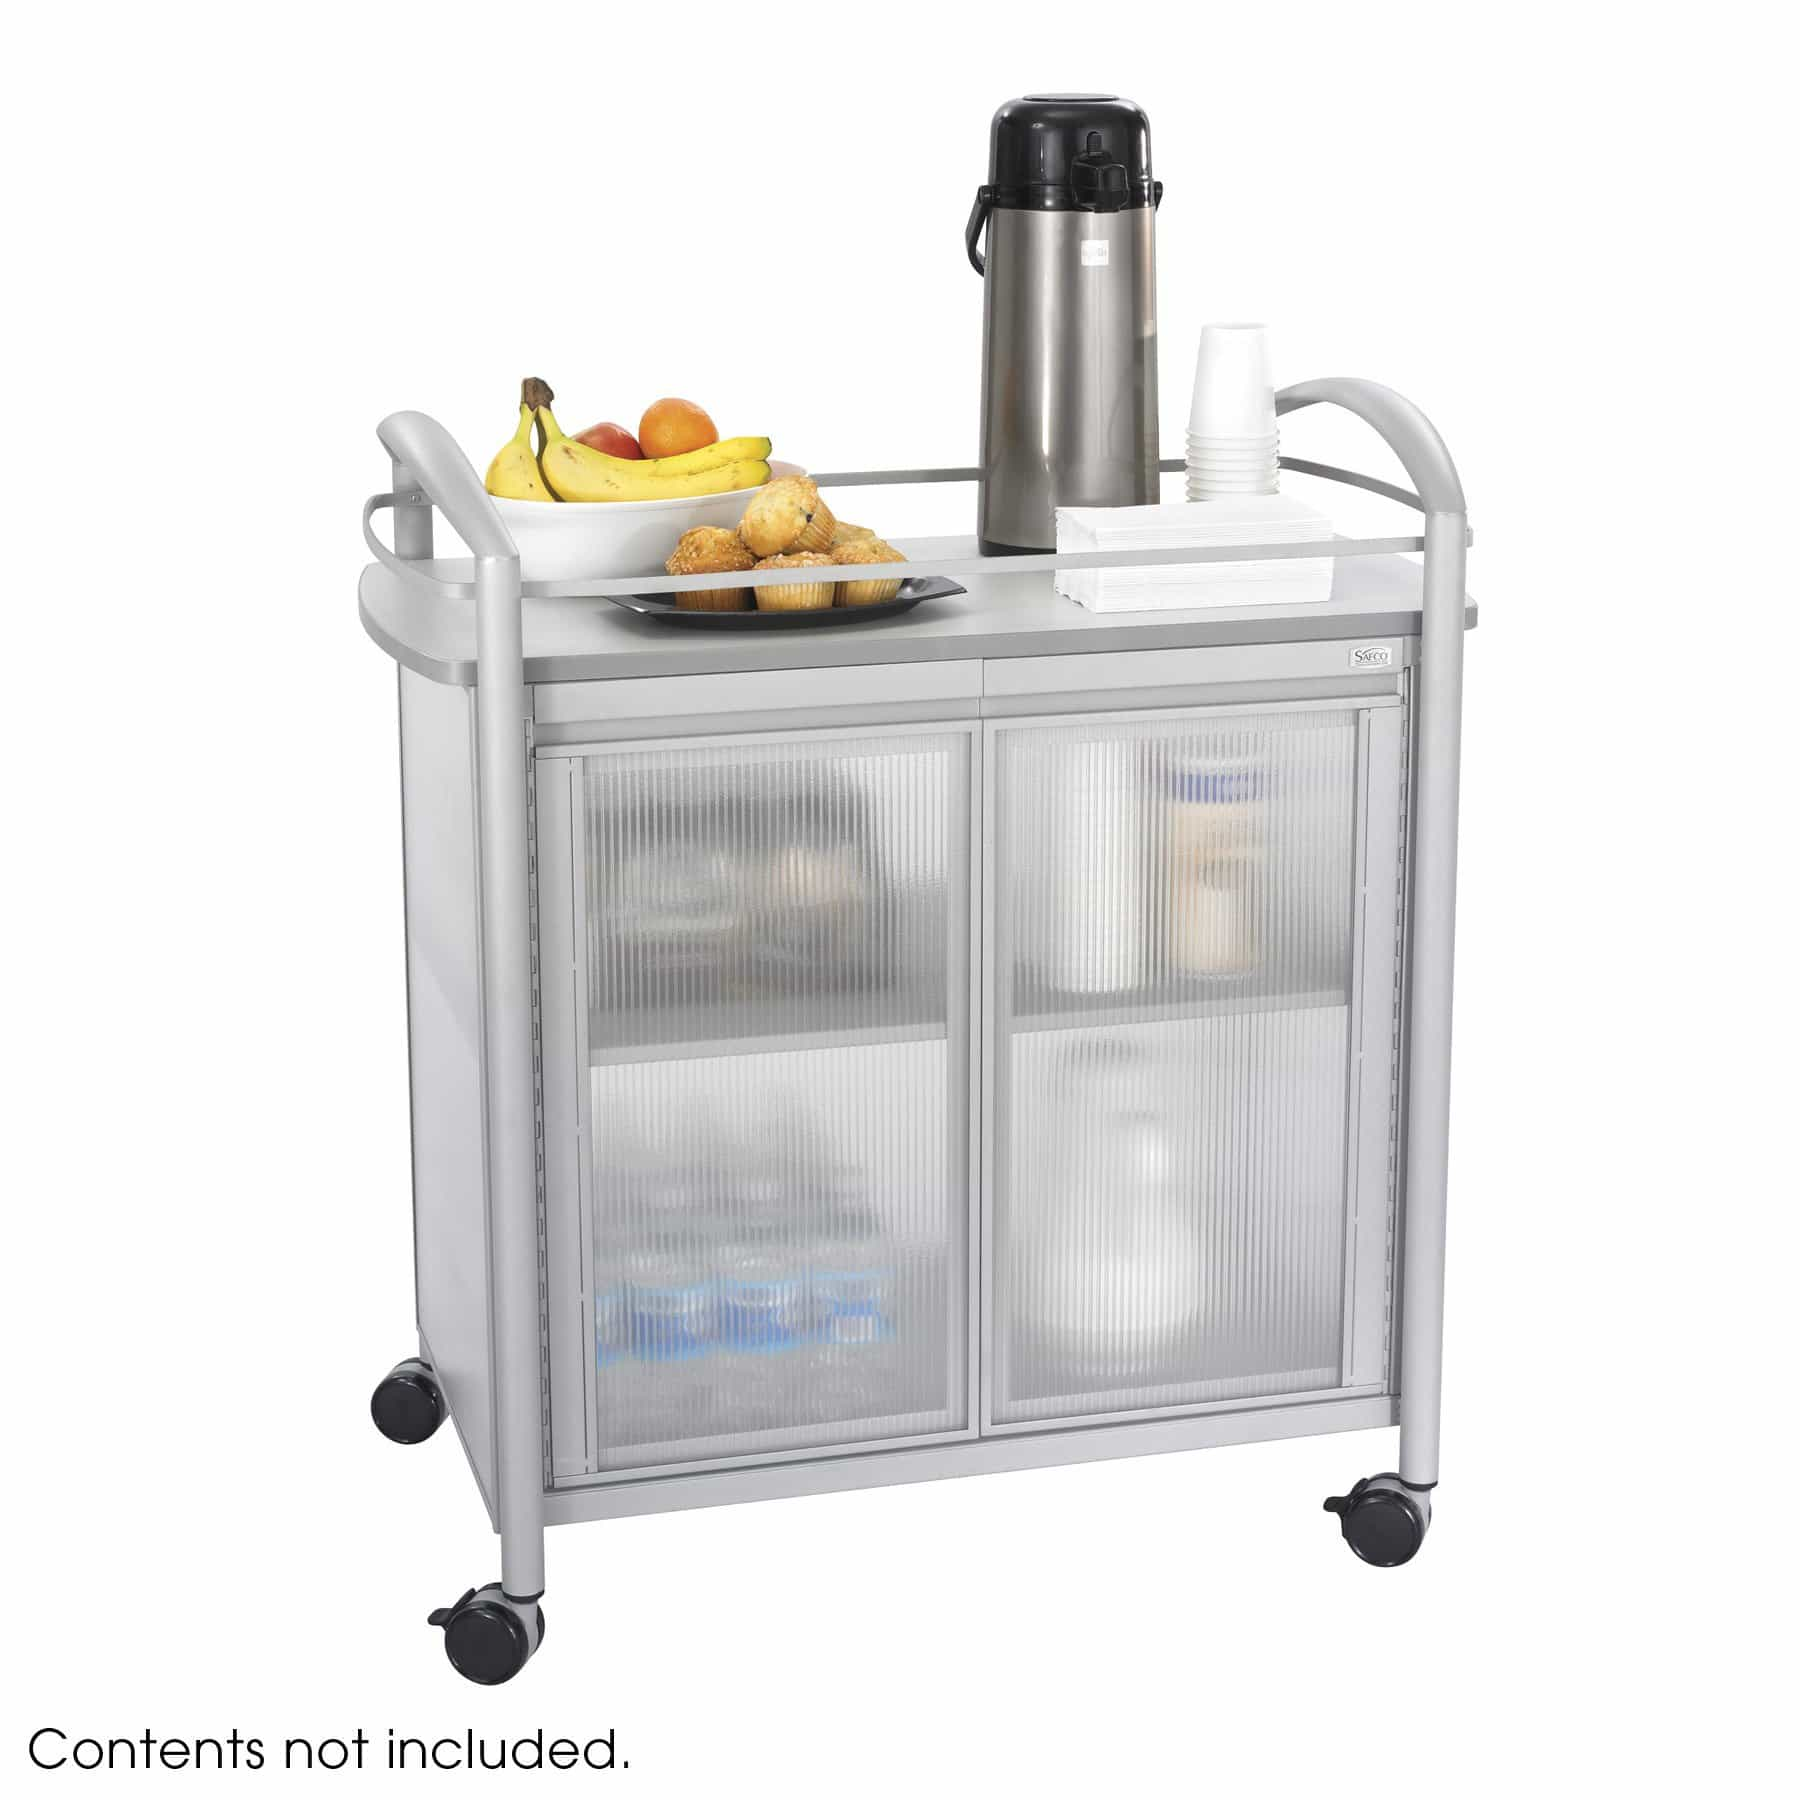 bedinhome - Hospitality 200 lbs Weight Capacity Impromptu Refreshment Cart With Steel Frame - Safco - Refreshment Cart